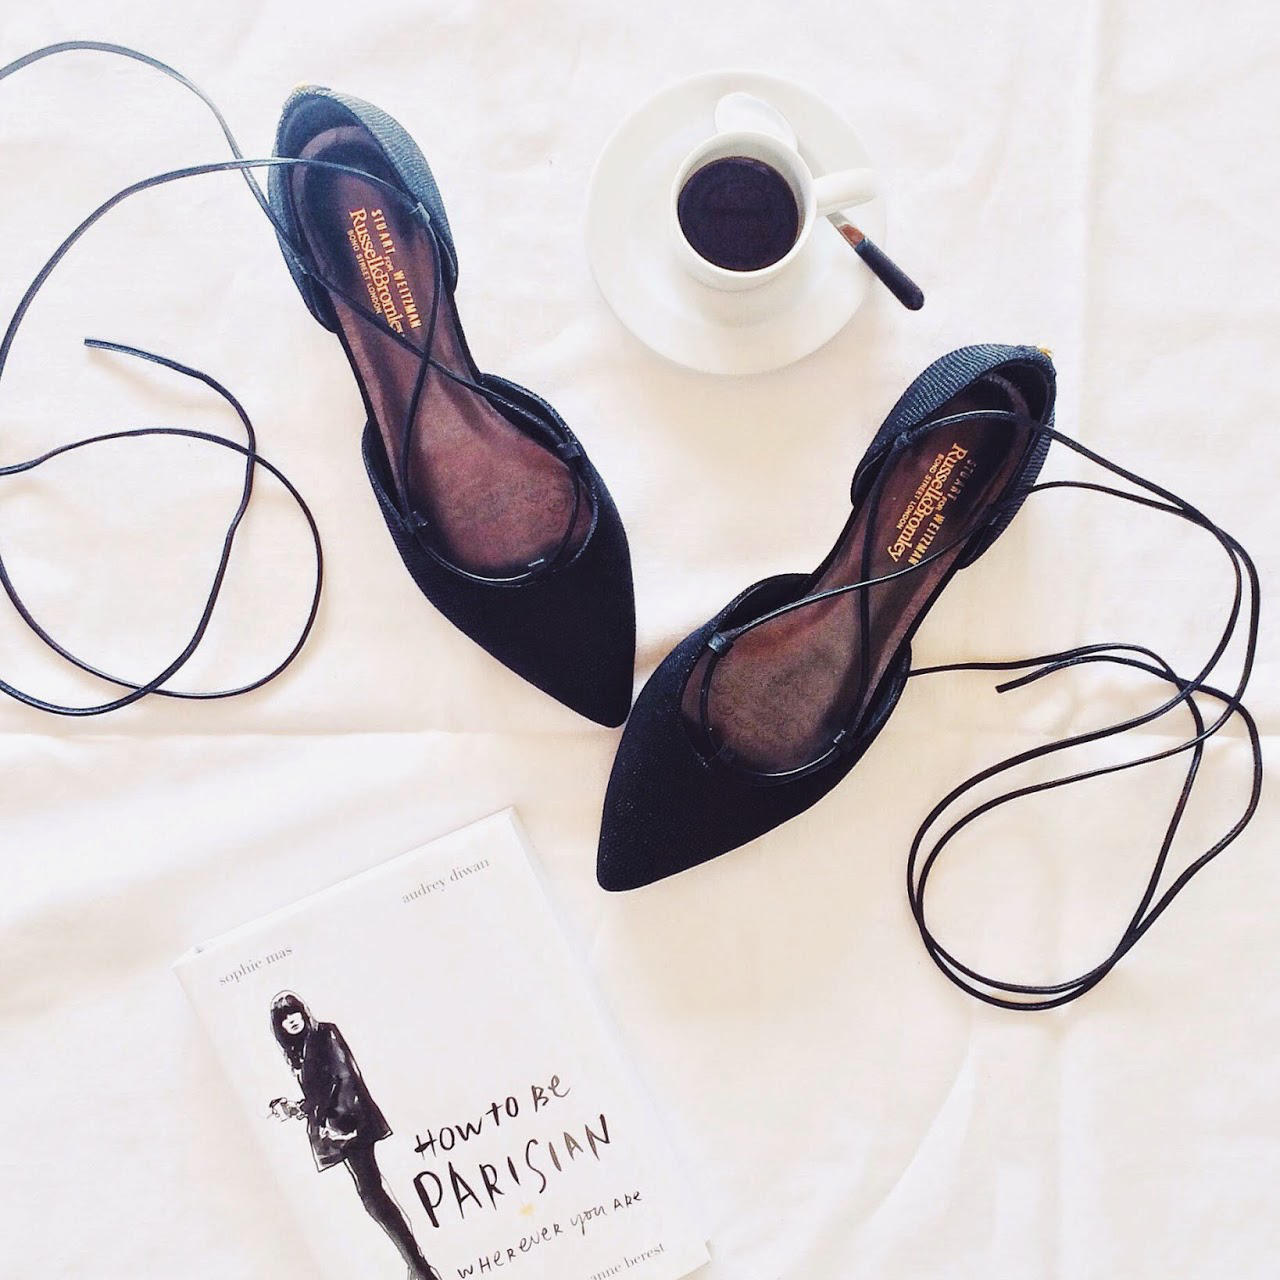 Up to a $1500 GIFT CARD with Aquazzura Shoes Purchase @ Neiman Marcus